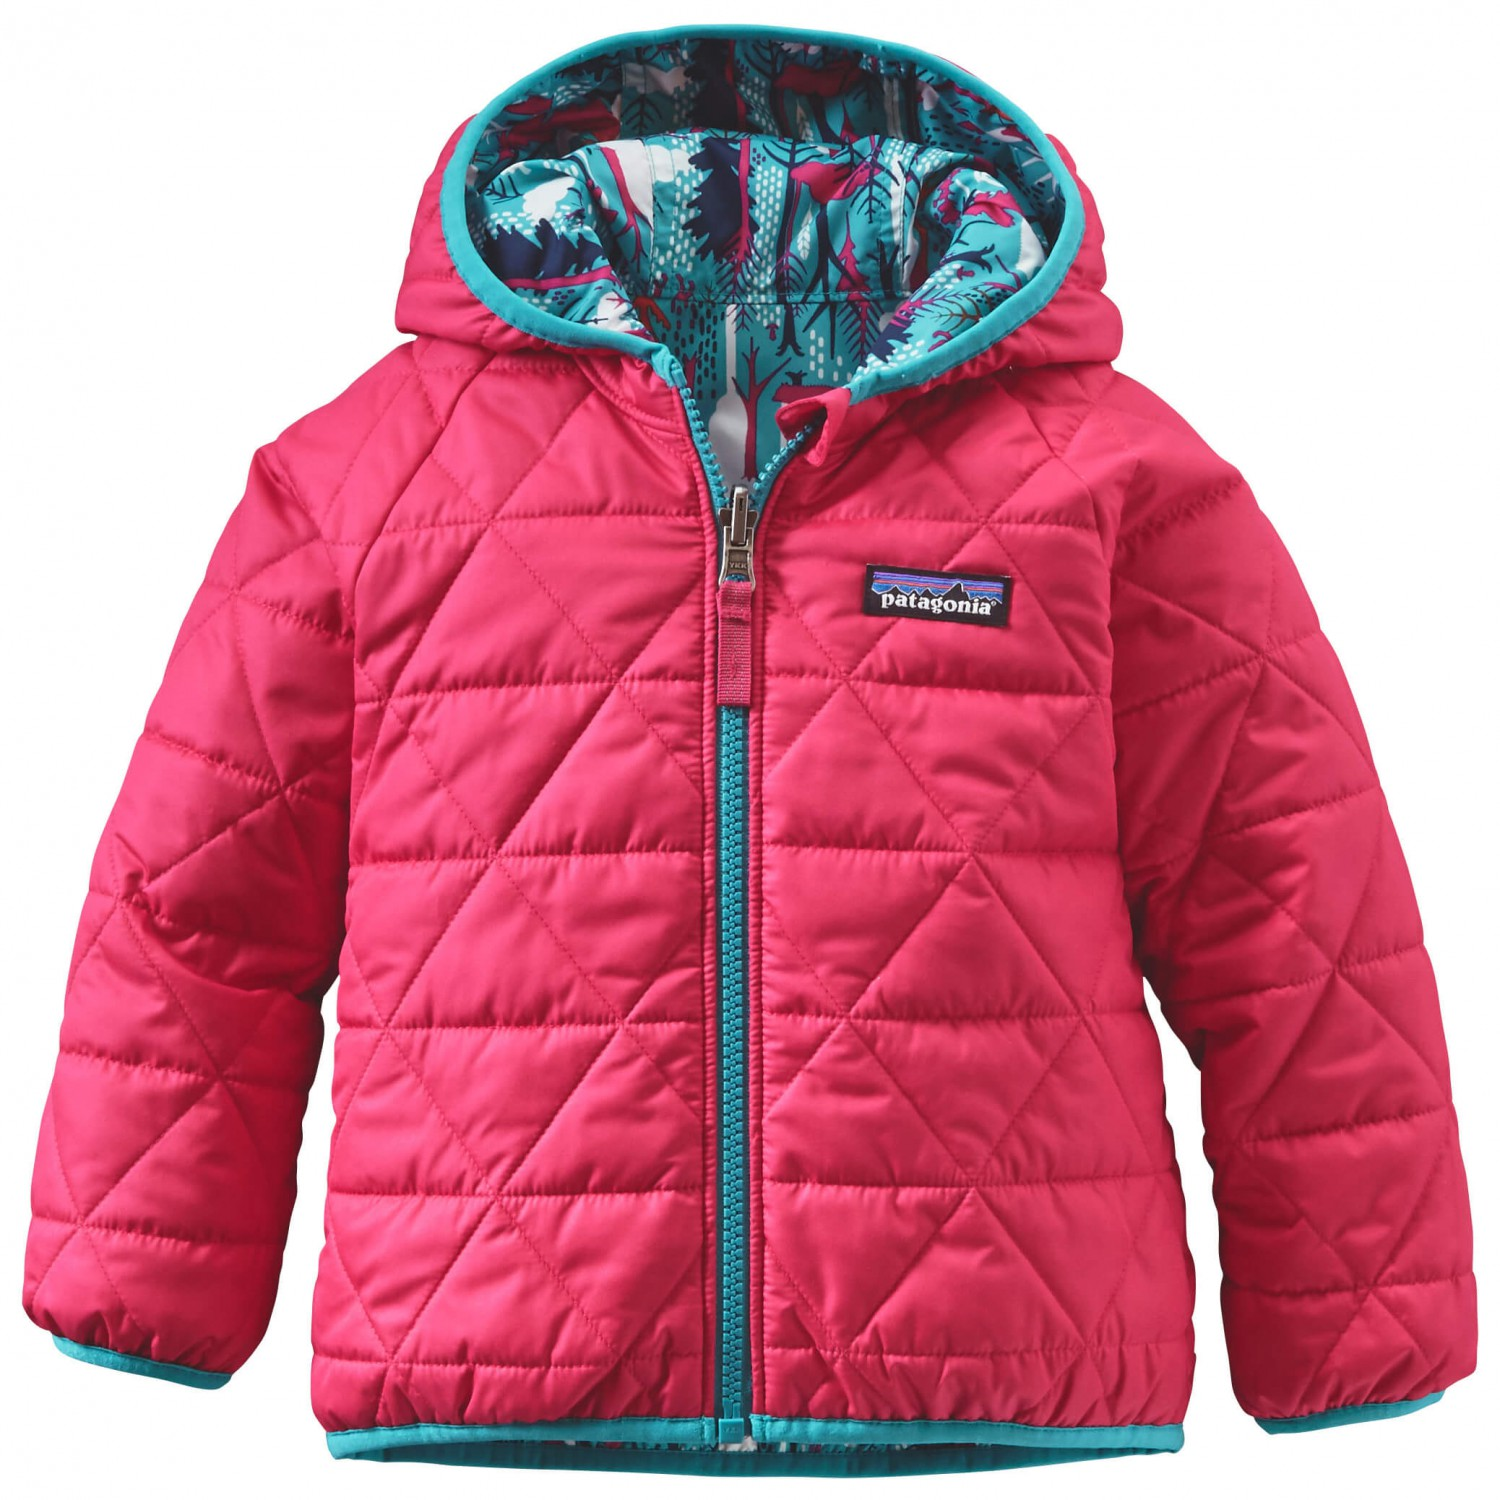 9f608e6c1 Patagonia Baby Reversible Puff-Ball Jacket - Synthetic Jacket Kids ...